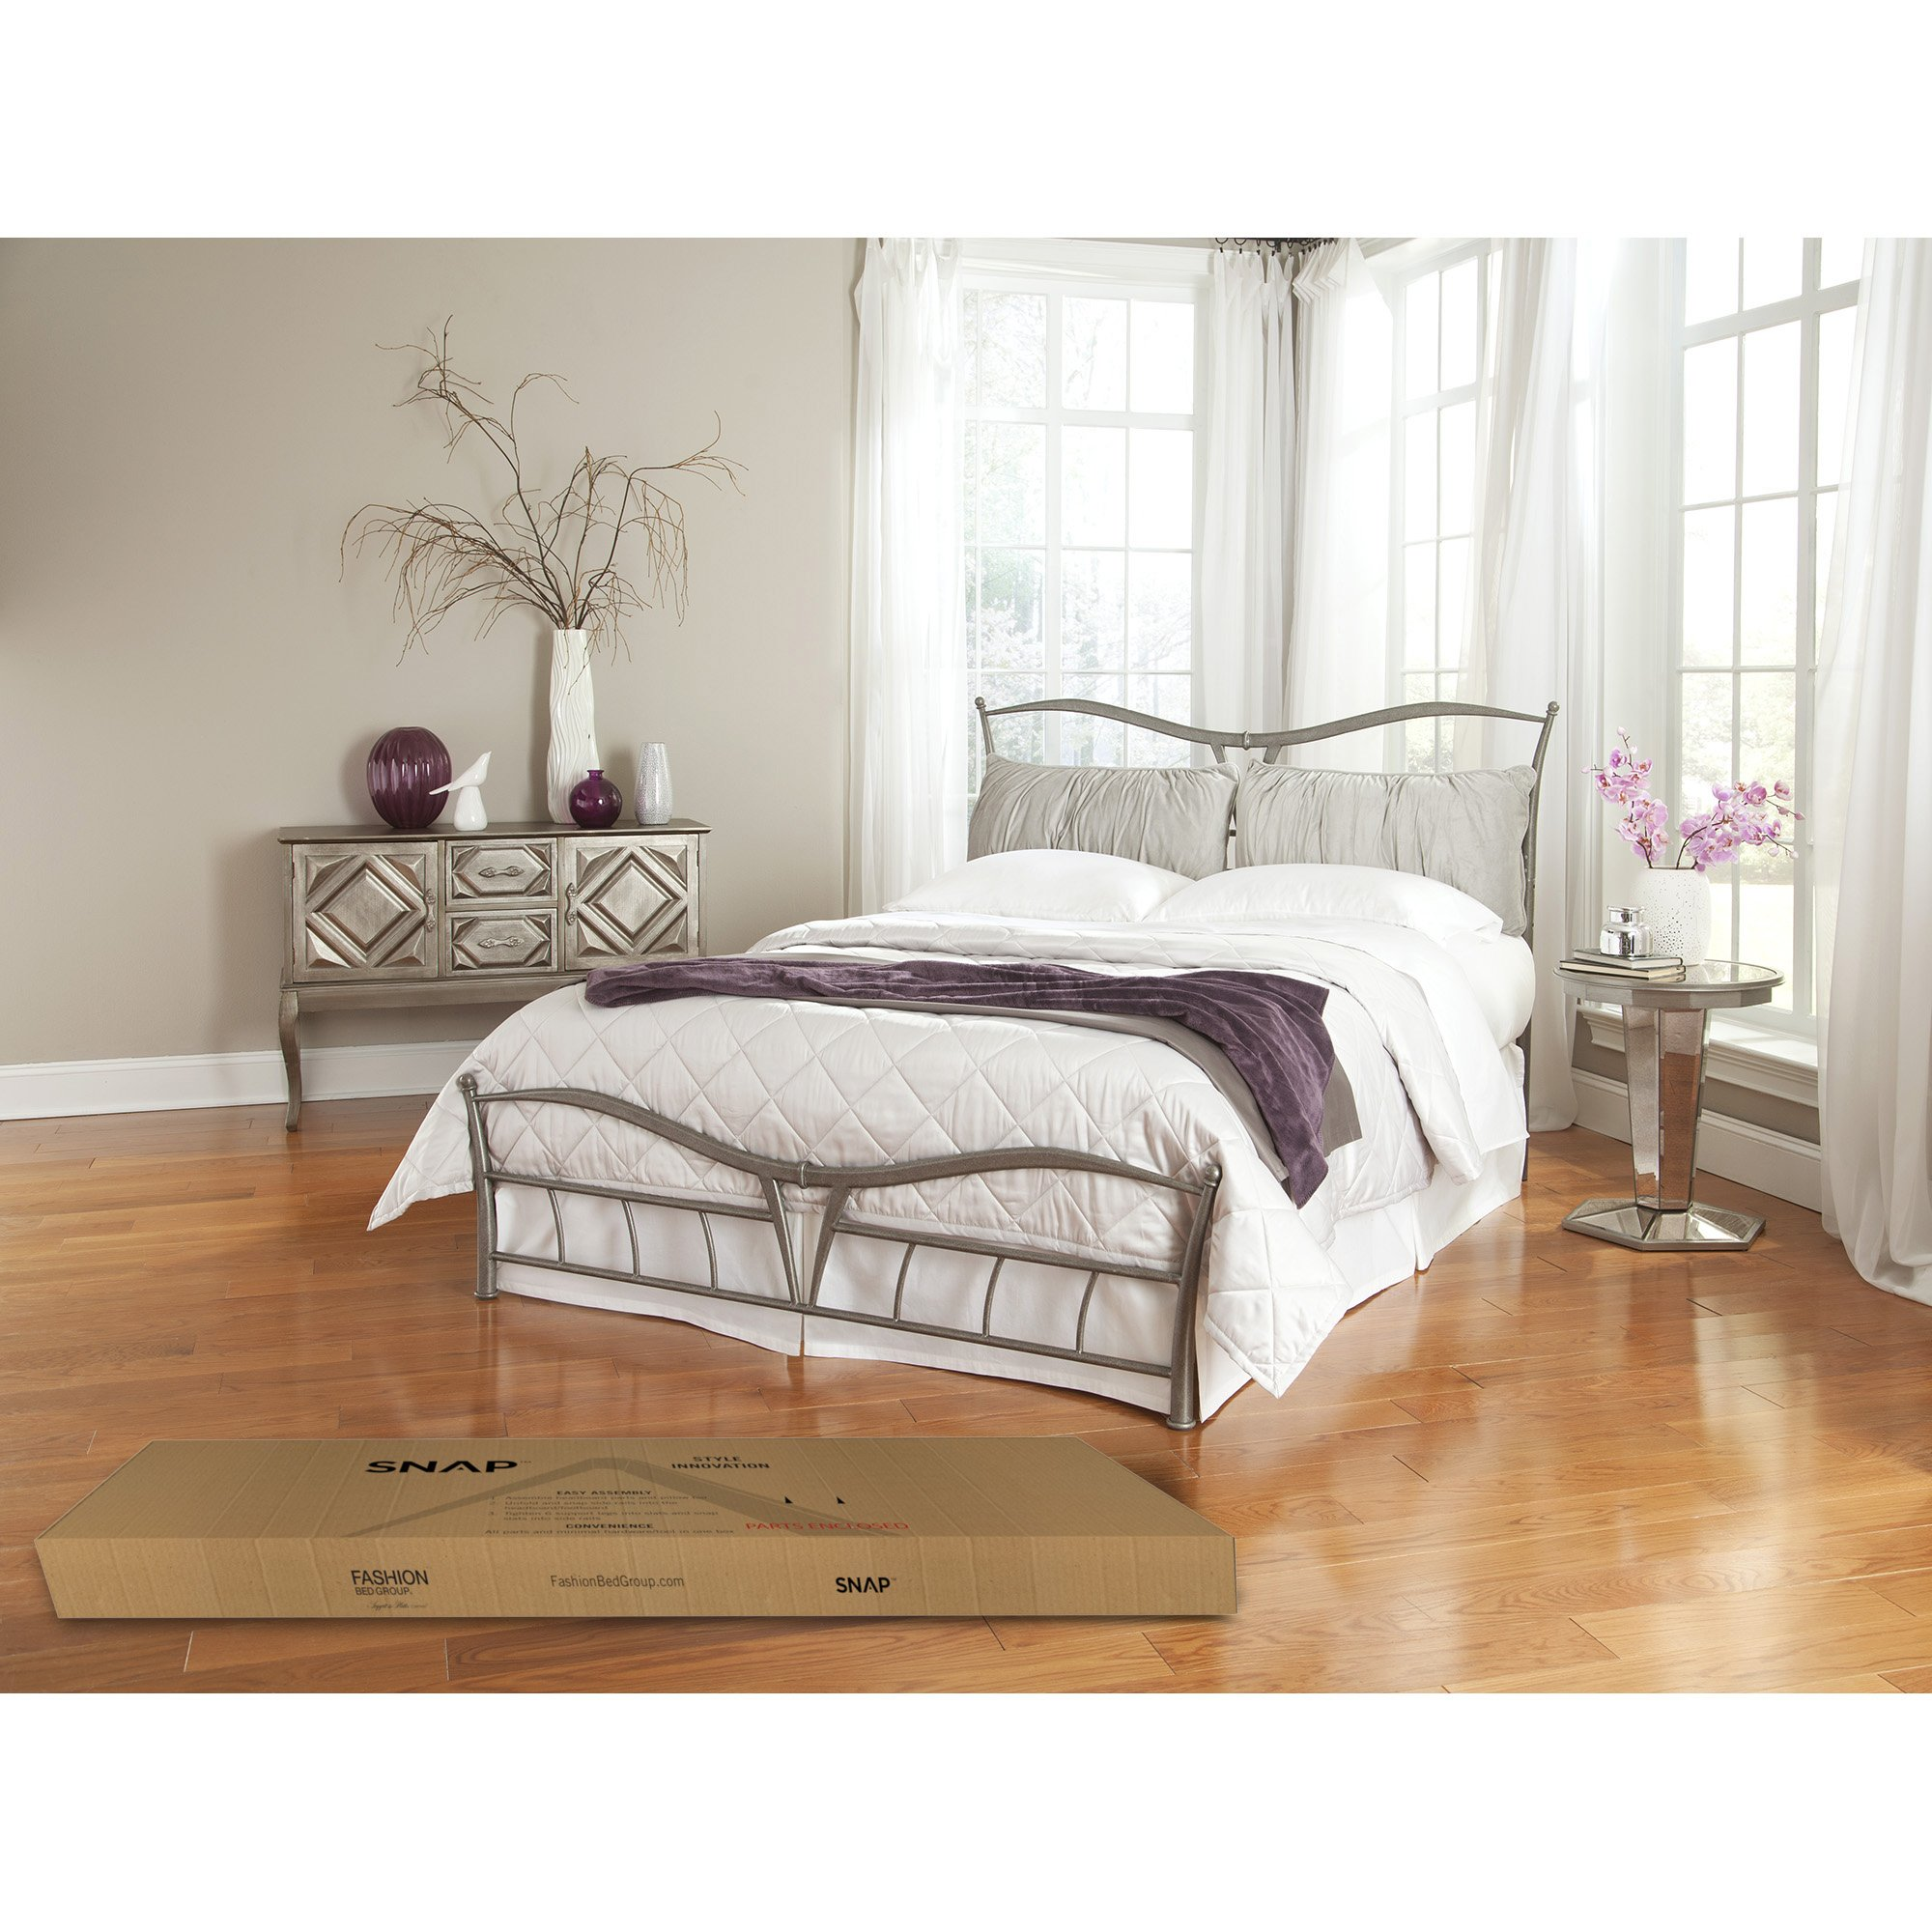 lotus snap bed with detachable headboard pillows and